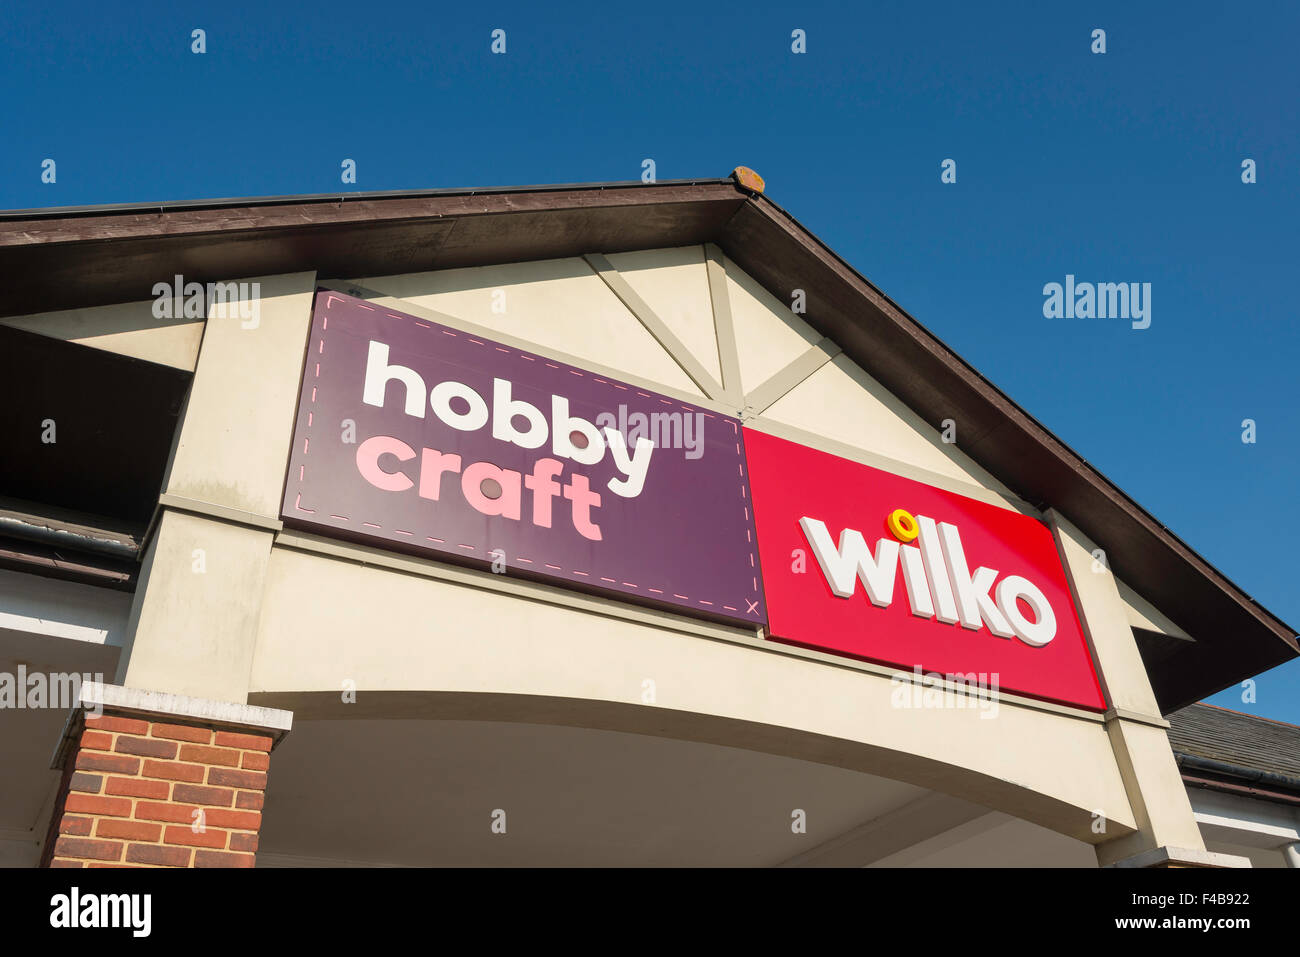 Hobby Craft & Wilko entrance, Two Rivers Shopping Centre, Staines-upon-Thames, Surrey, England, United Kingdom - Stock Image